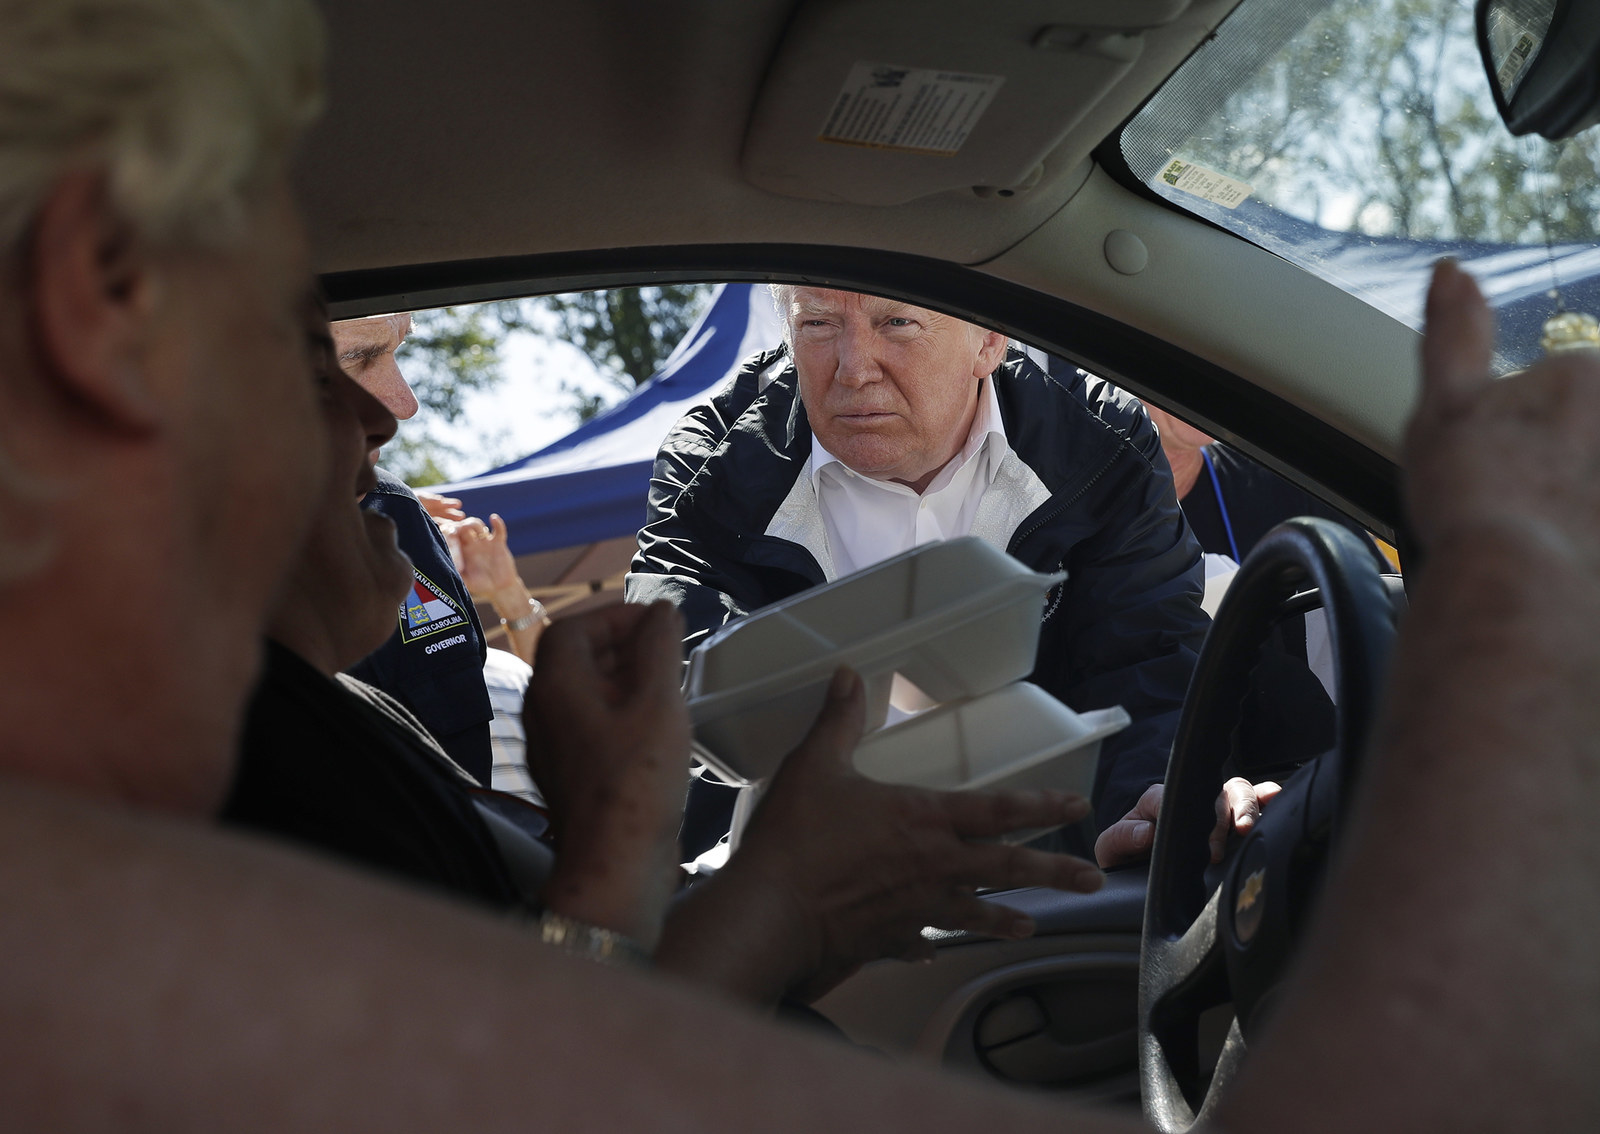 Trump hands out food during Hurricane Florence recovery efforts on Sept. 19 in New Bern, North Carolina.